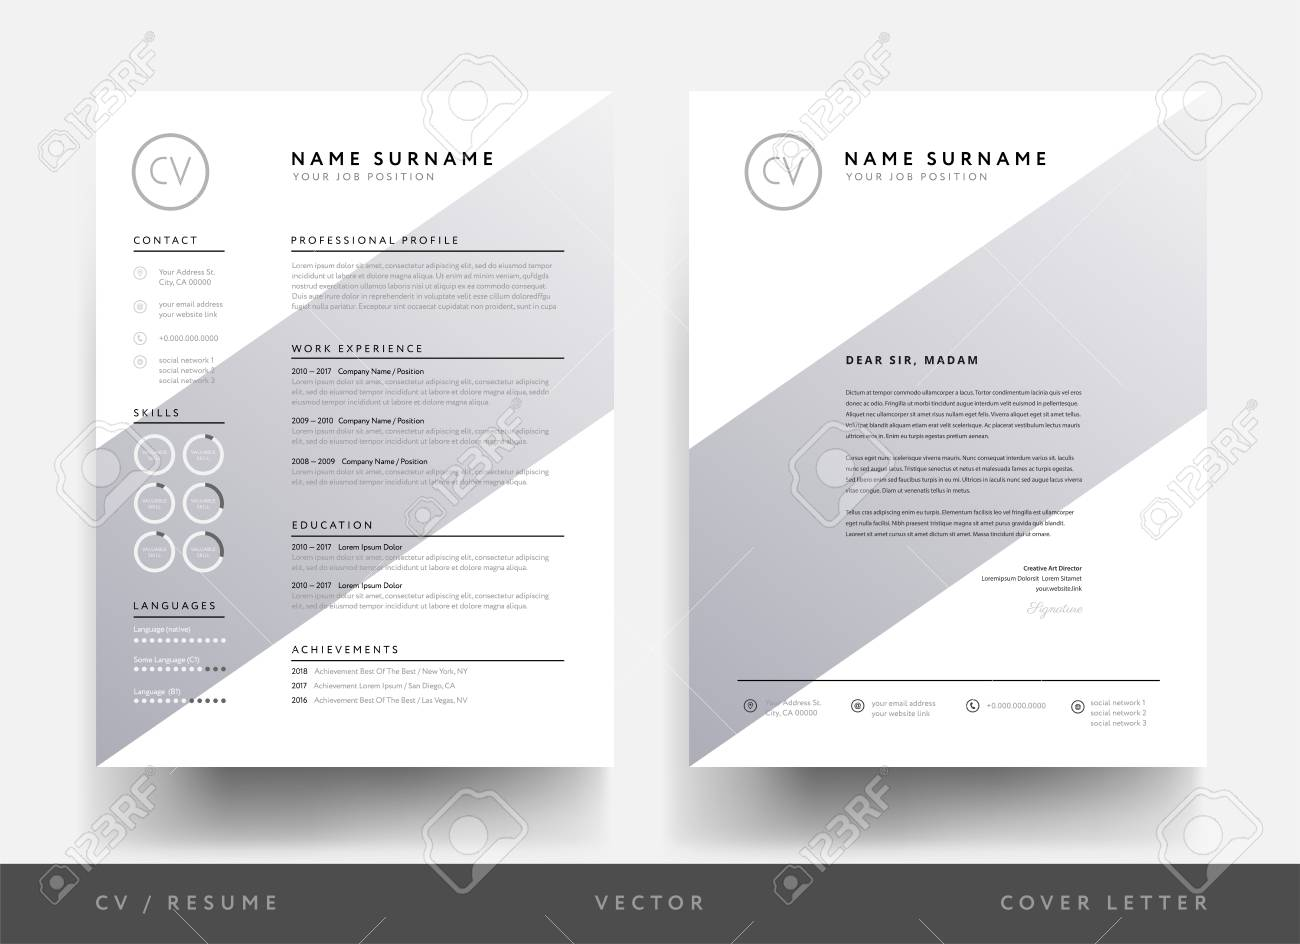 Resume And Letterhead Design Template Royalty Free Cliparts, Vectors ...